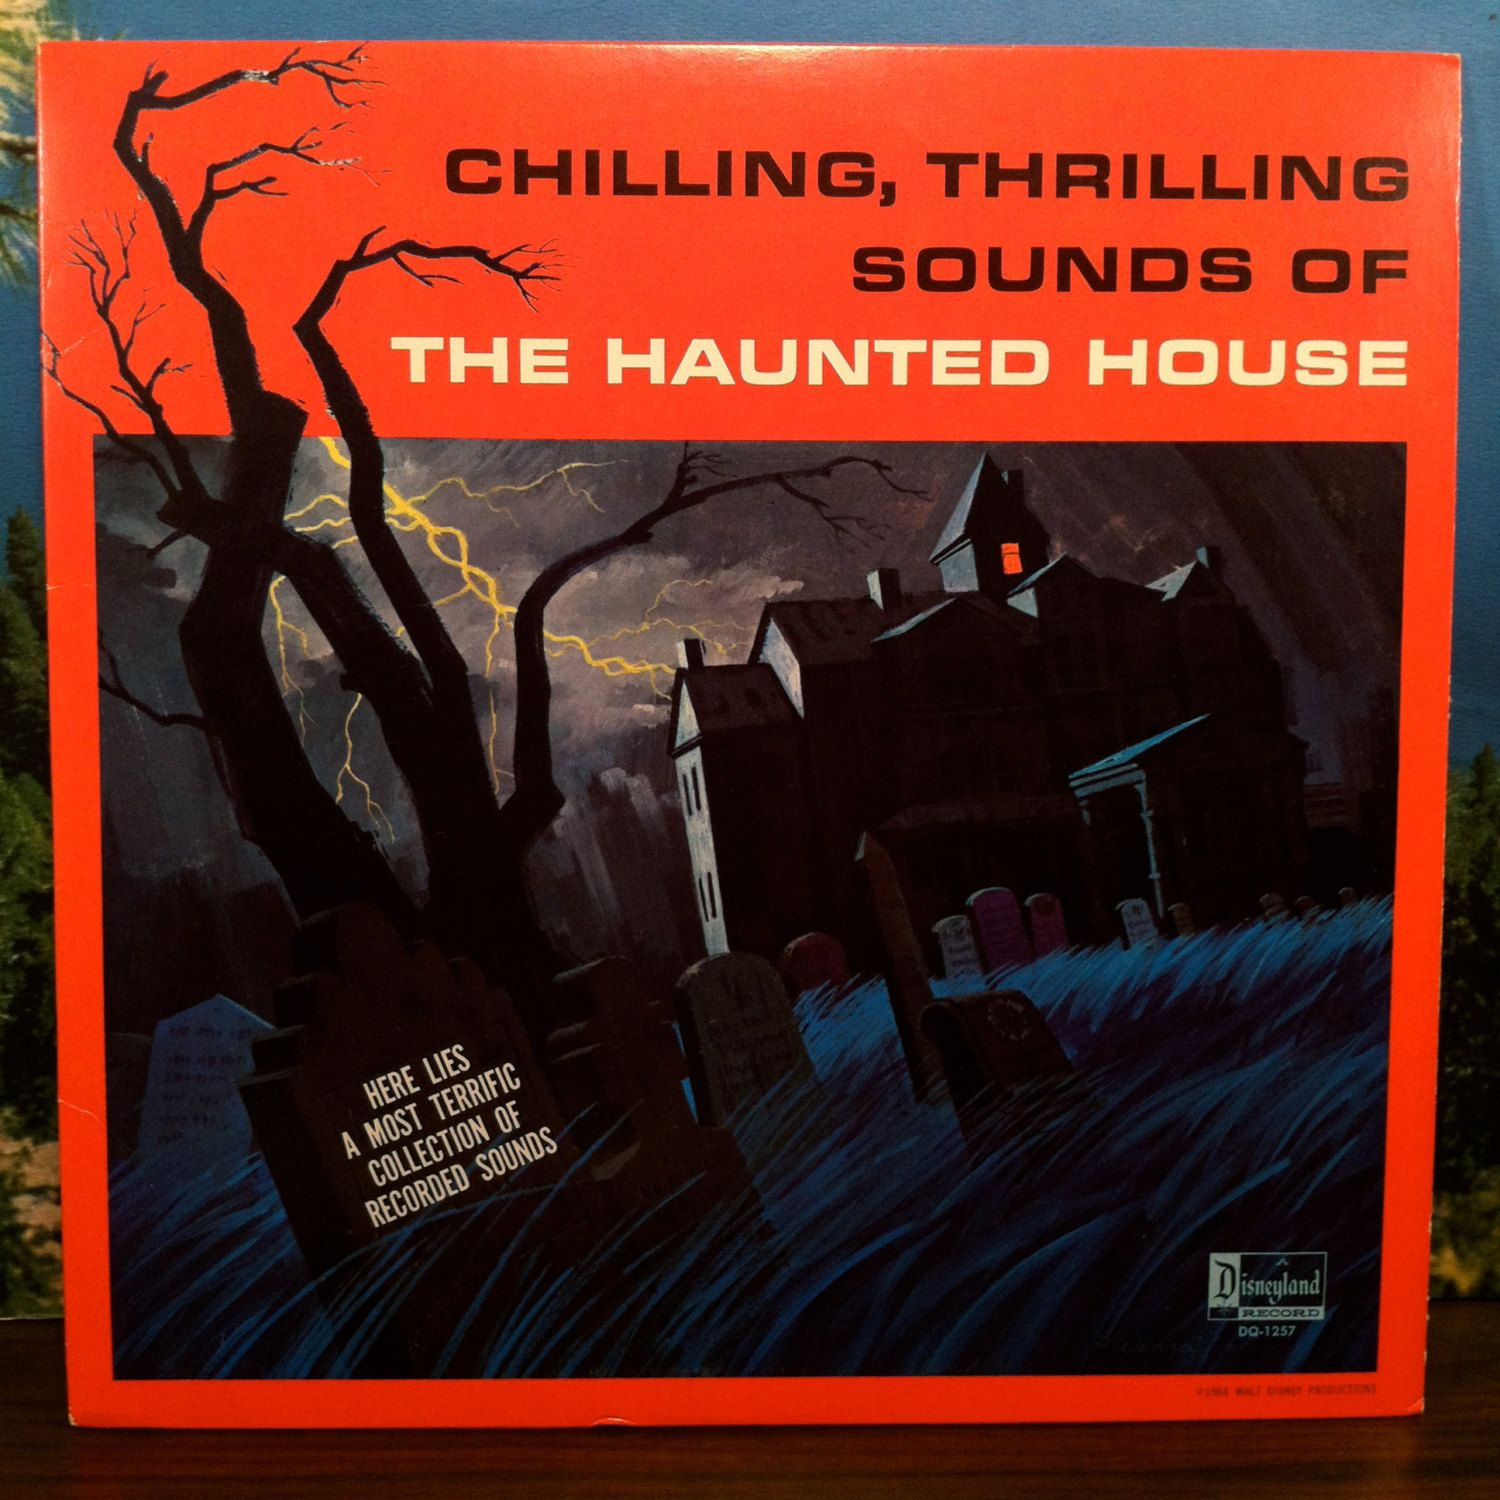 Chilling, Thrilling Sounds of The Haunted House Vinyl